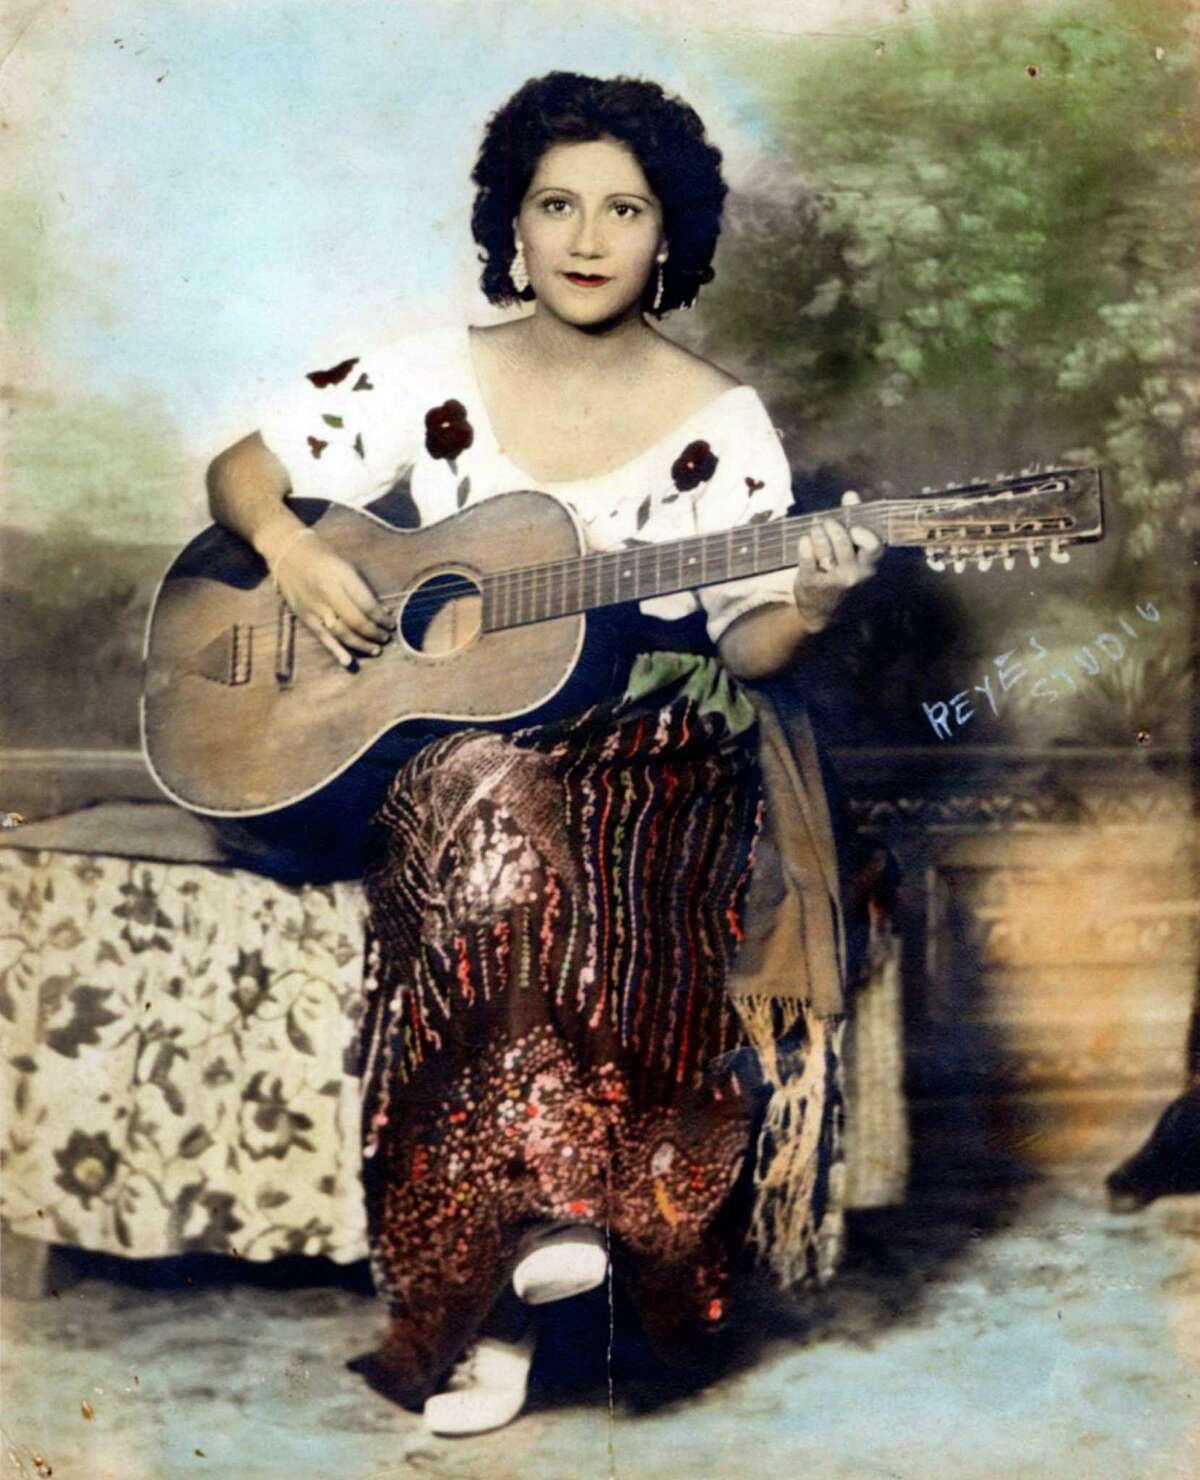 Undated photograph of ranchera singer Celia Mireles. The San Antonio singer was a contemporary of Lydia Mendoza. Mireles wrote and recorded her own songs in the mid-1930s and also performed with Mendoza. Her sister made the dress she is wearing.